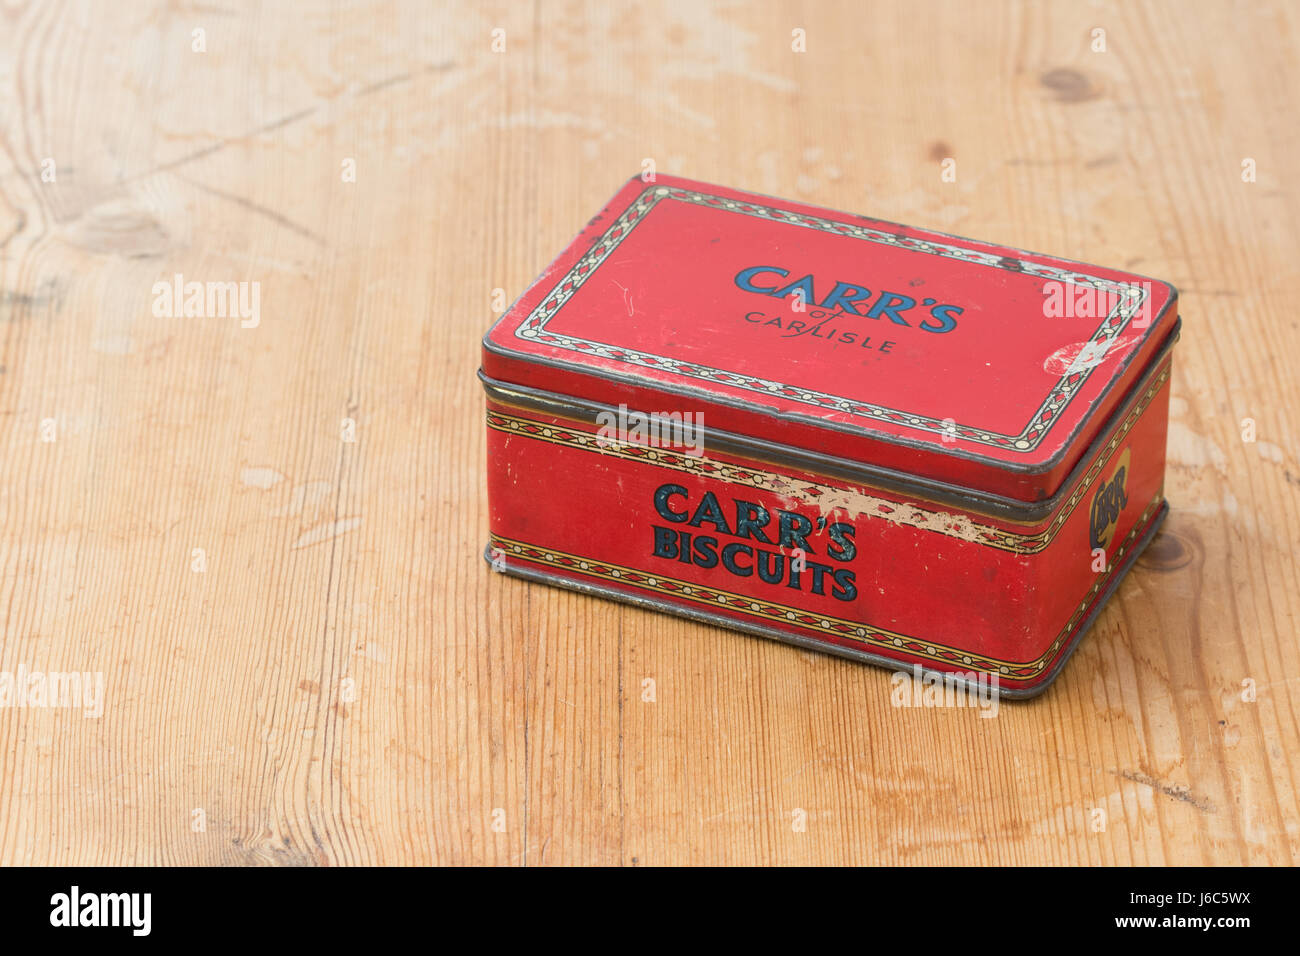 Carr's biscuits vintage biscuit tin - Stock Image